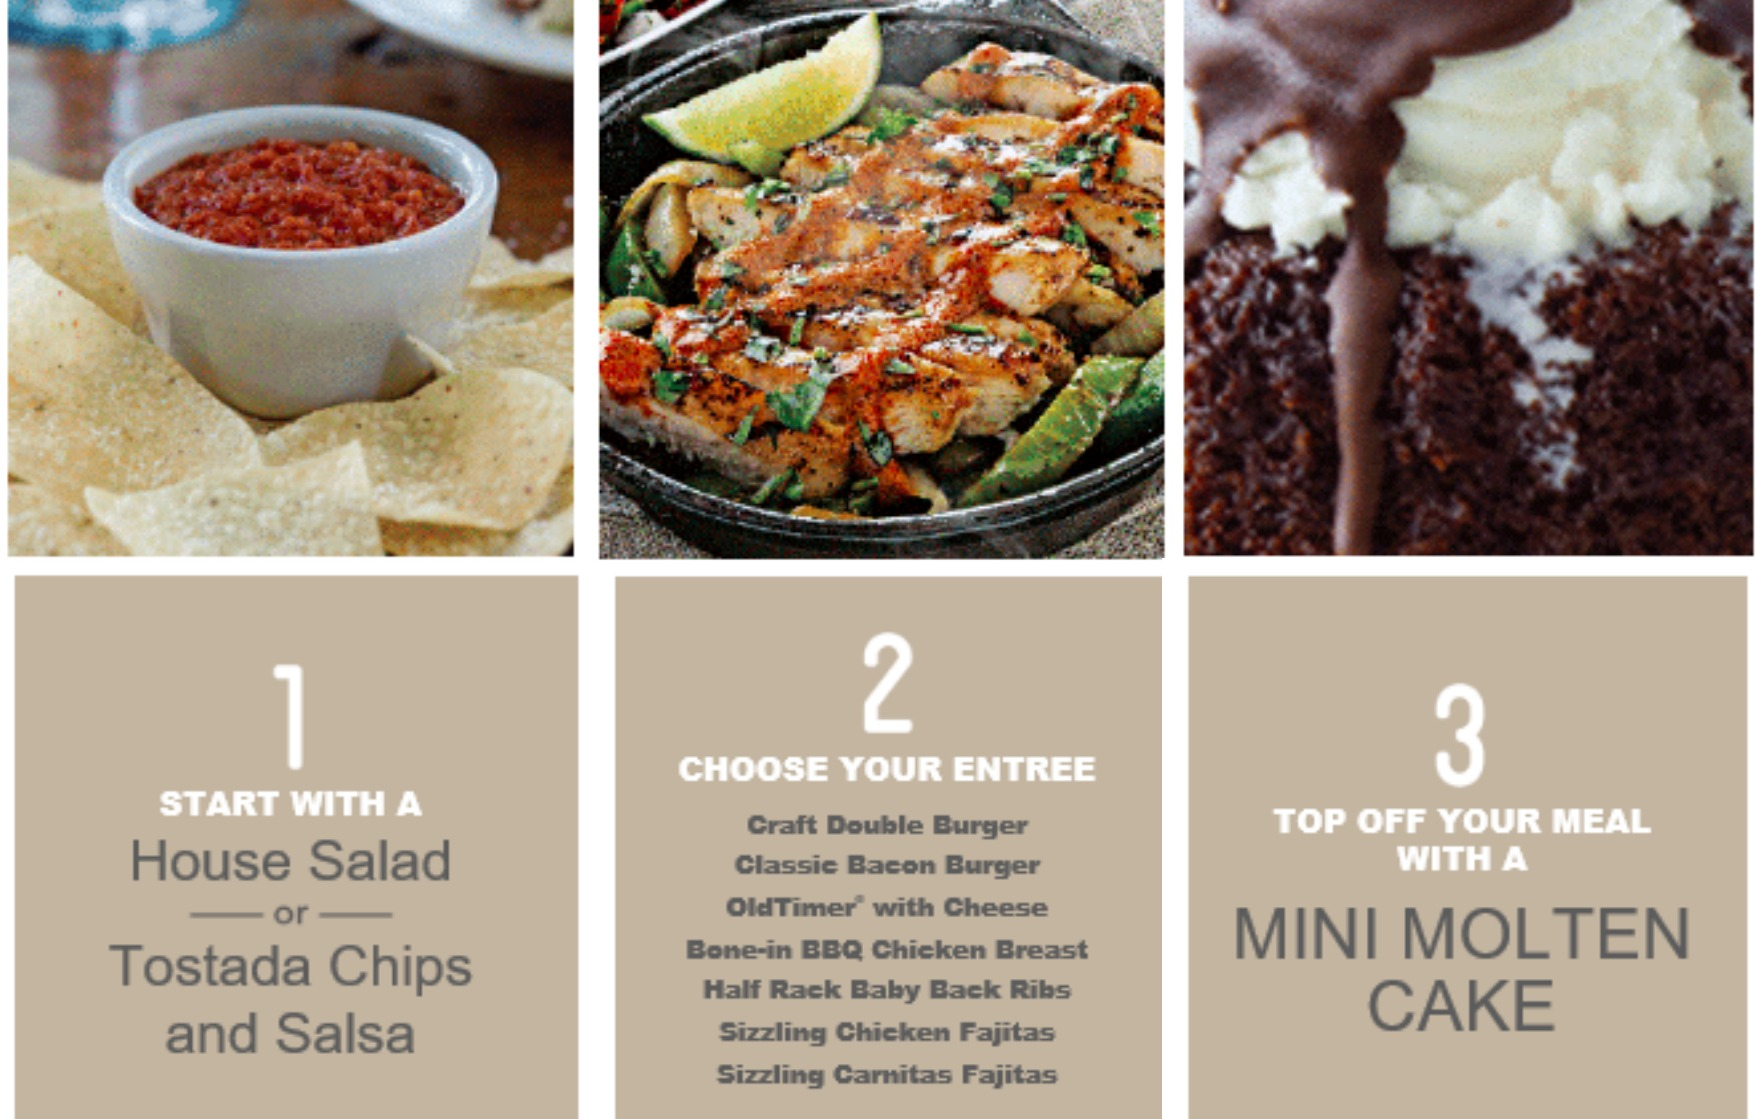 photograph regarding Chilis Printable Menu called Chilis Bar Grill: 3-Class Supper Simply $10 (Contains